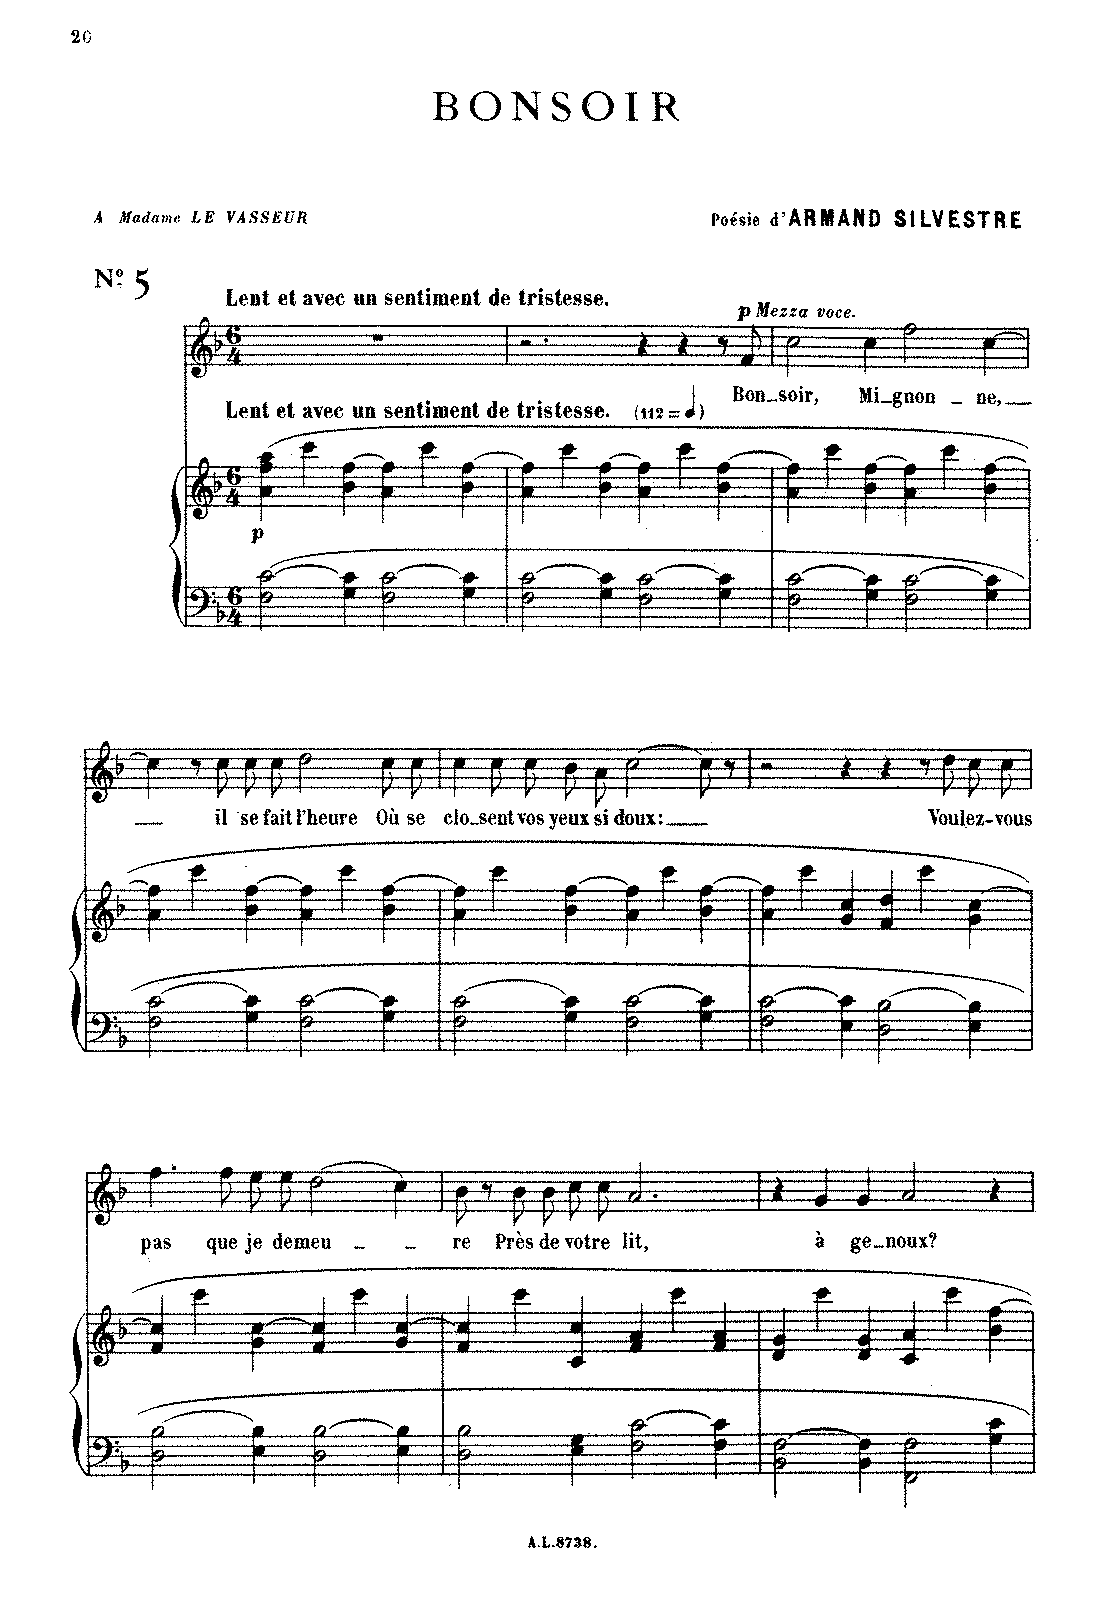 PMLP169768-Pierné - Bonsoir (voice and piano).pdf